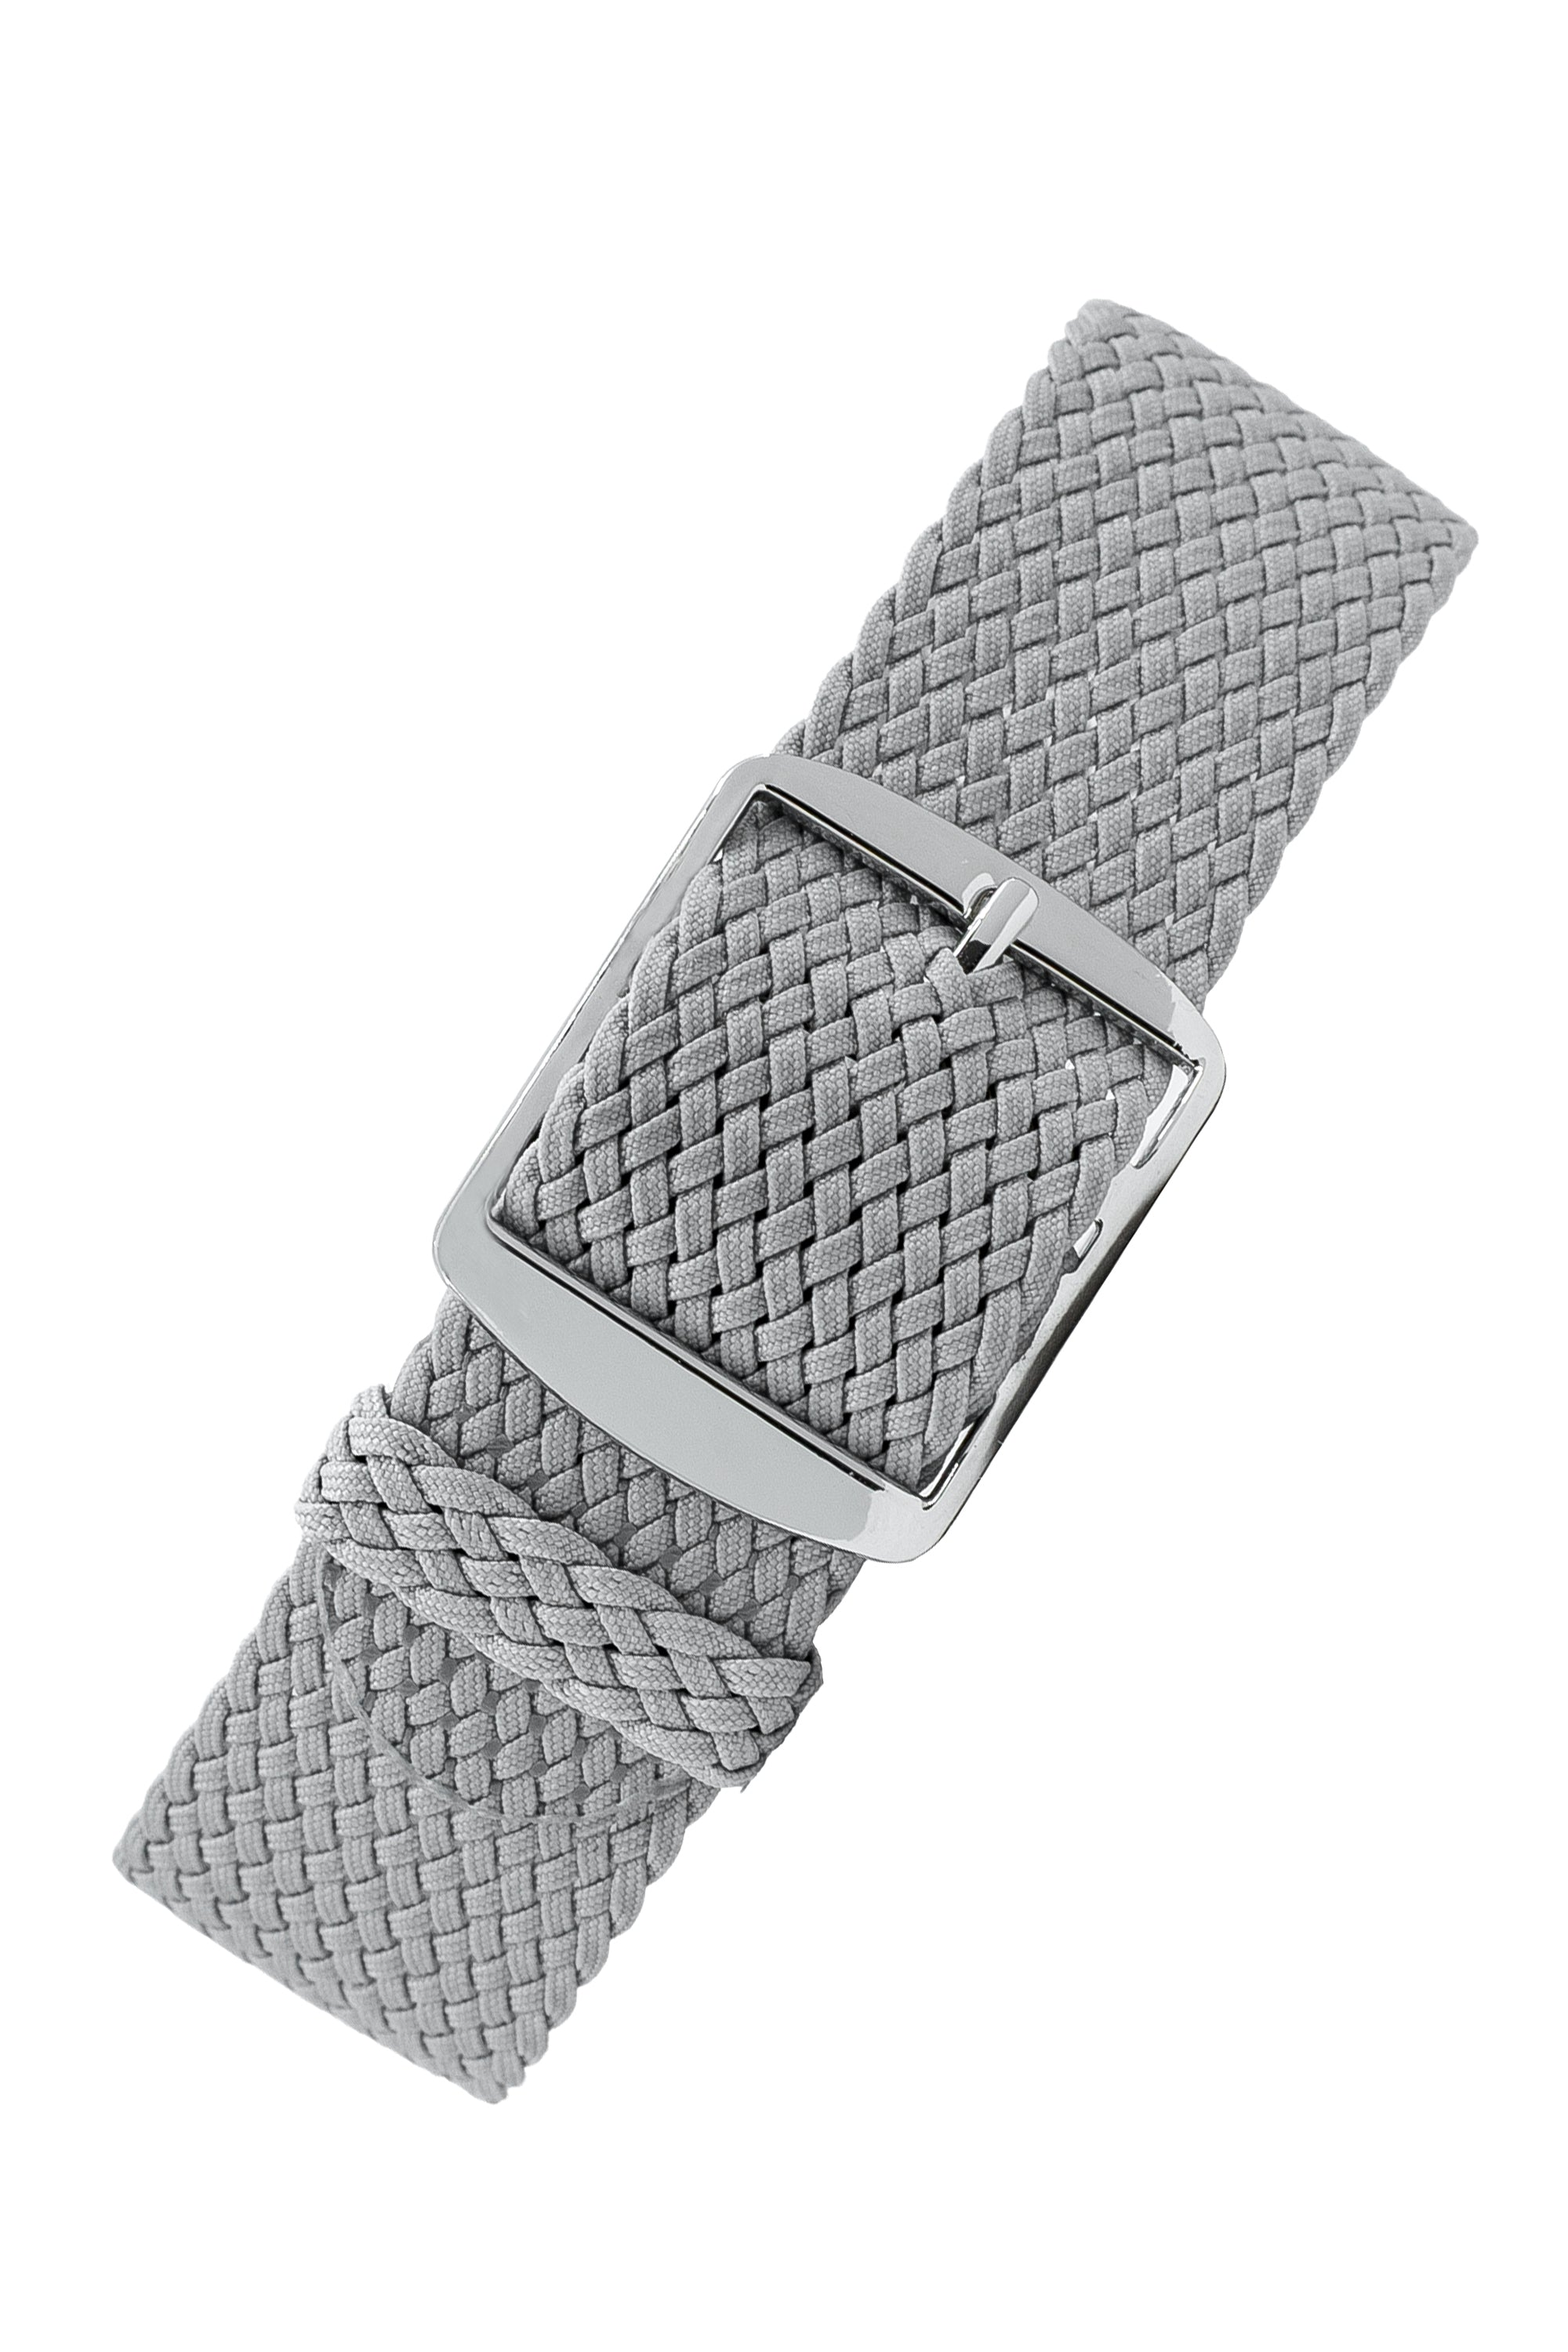 PERLON Braided One Piece Watch Strap & Buckle in GREY